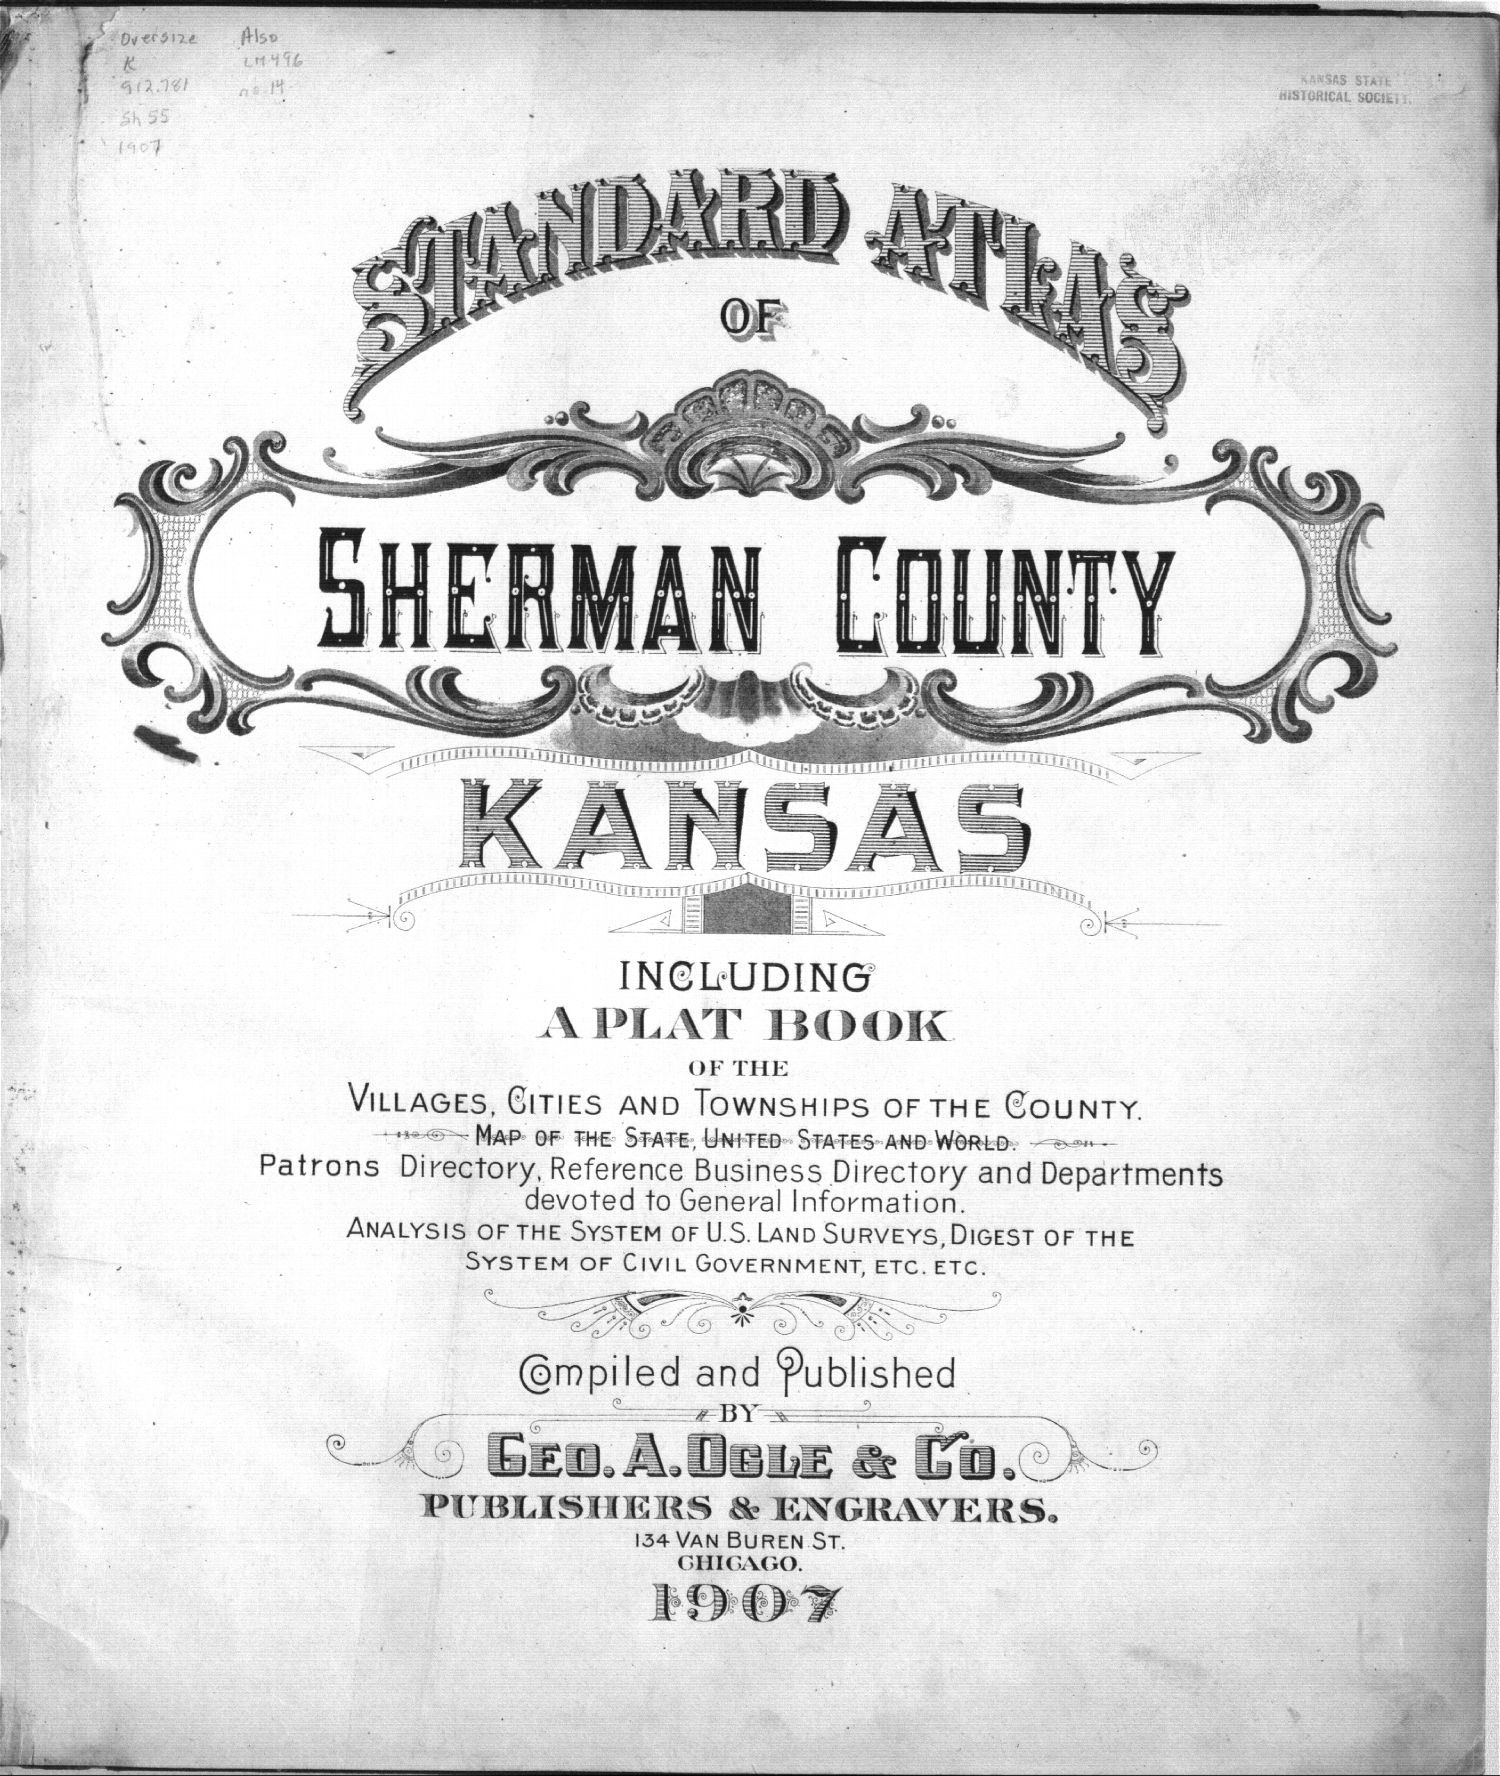 Standard atlas of Sherman County, Kansas - Title Page